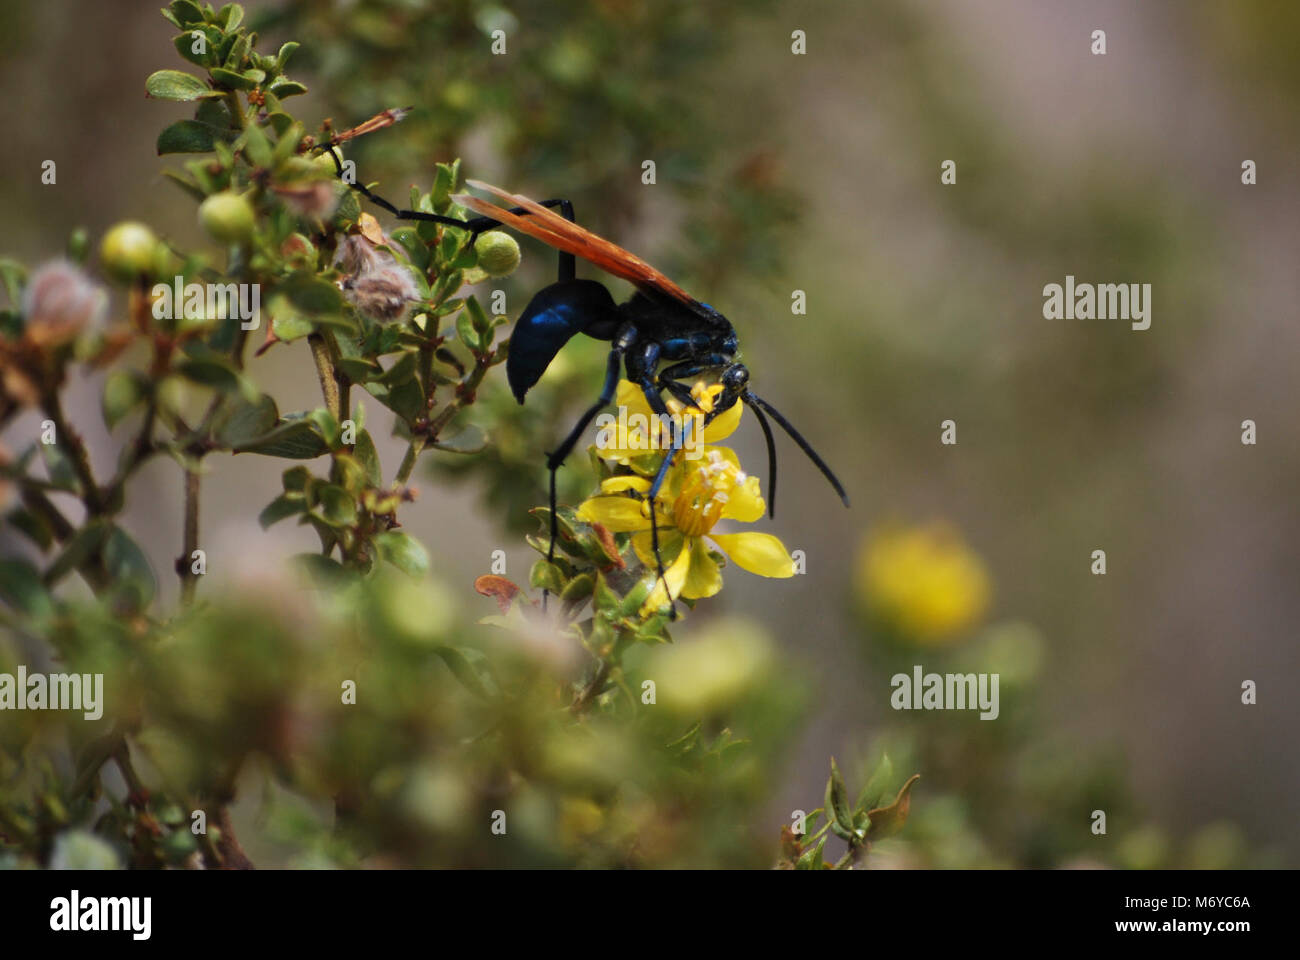 American Sand Wasp Stock Photos & American Sand Wasp Stock Images